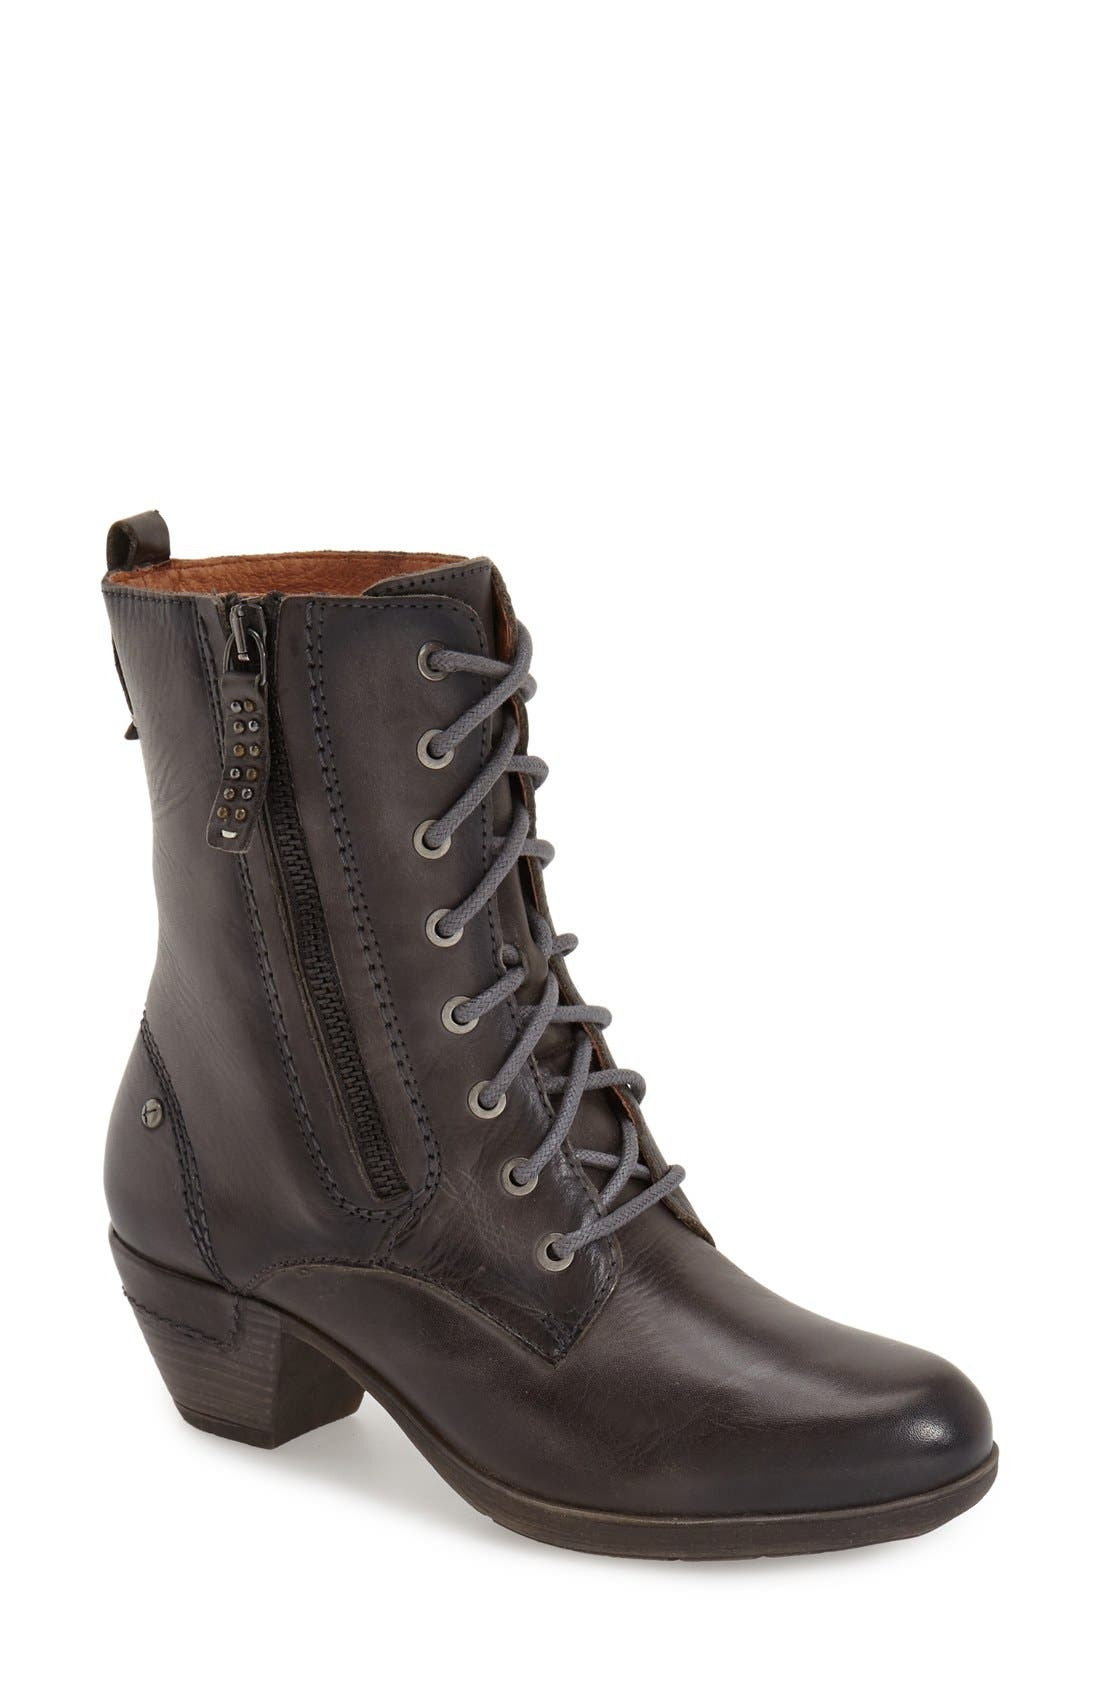 'Rotterdam' Lace-Up Boot,                             Main thumbnail 1, color,                             Lead Leather